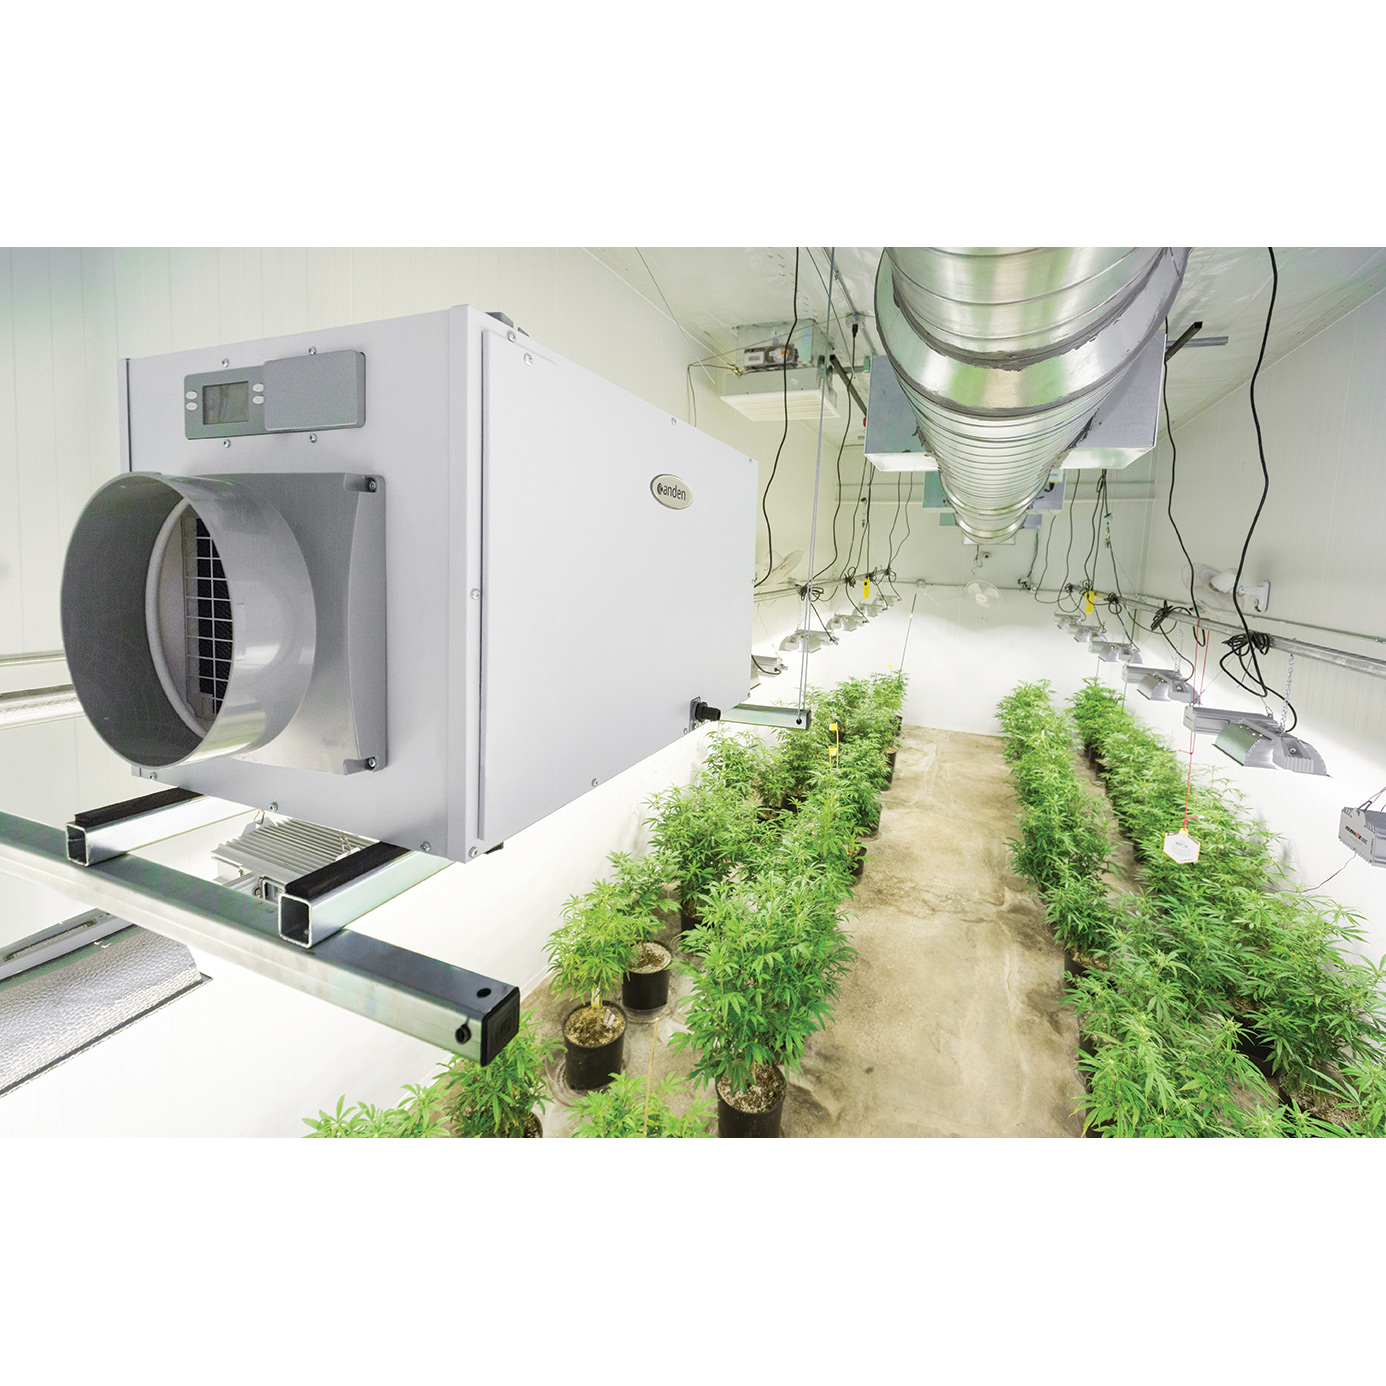 Grow room with hanging dehumidifier that has a specific cubic feet per minute capacity..